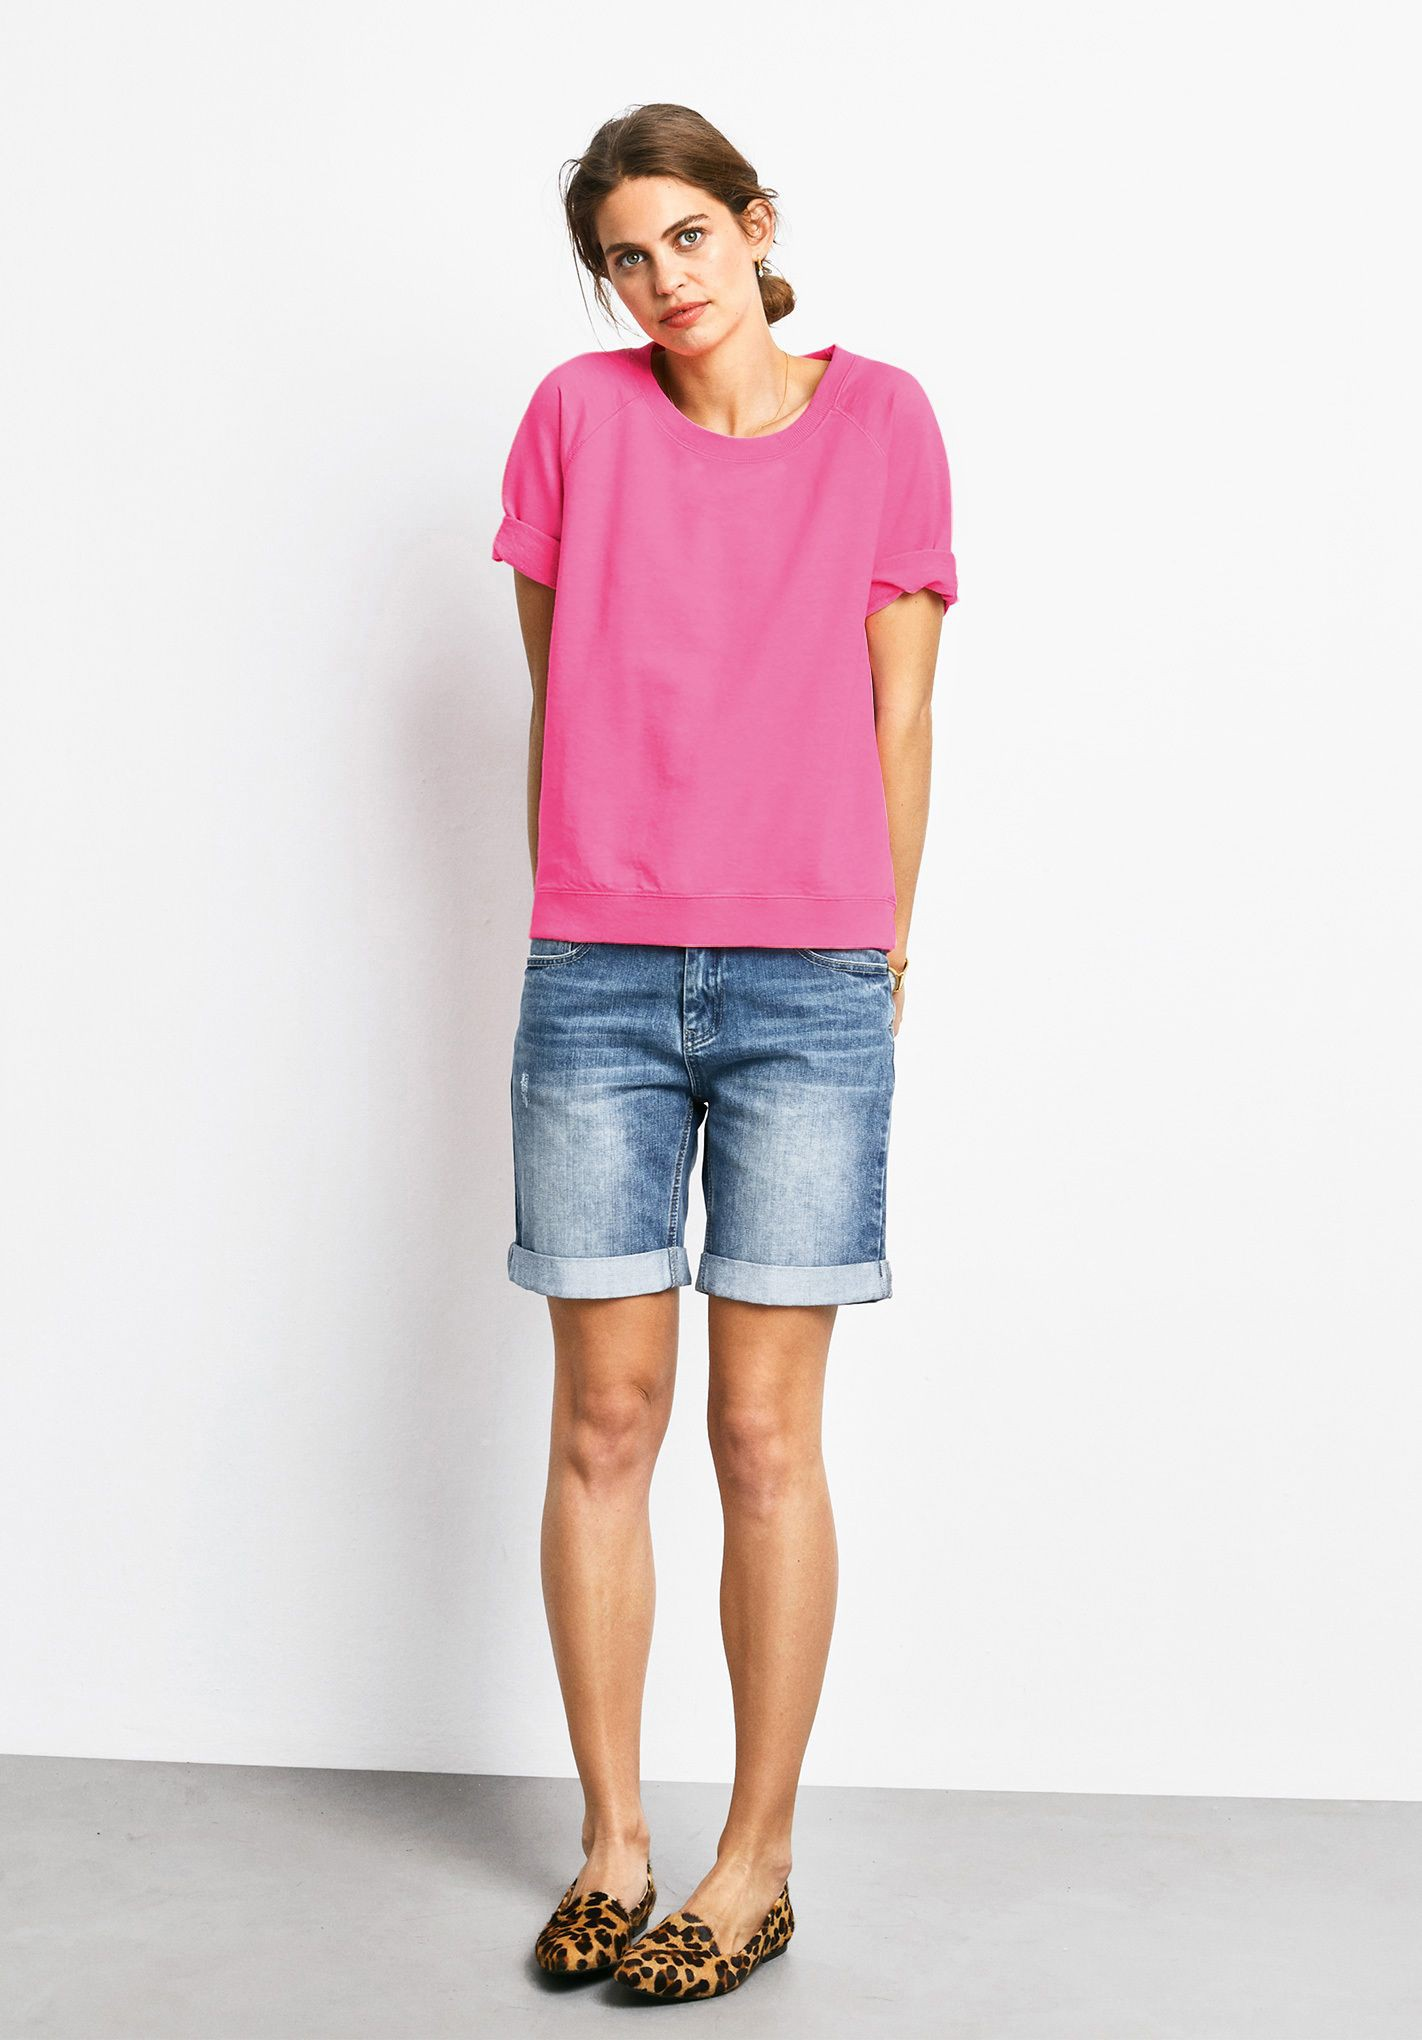 White and pink colour outfit with bermuda shorts, shorts, jeans